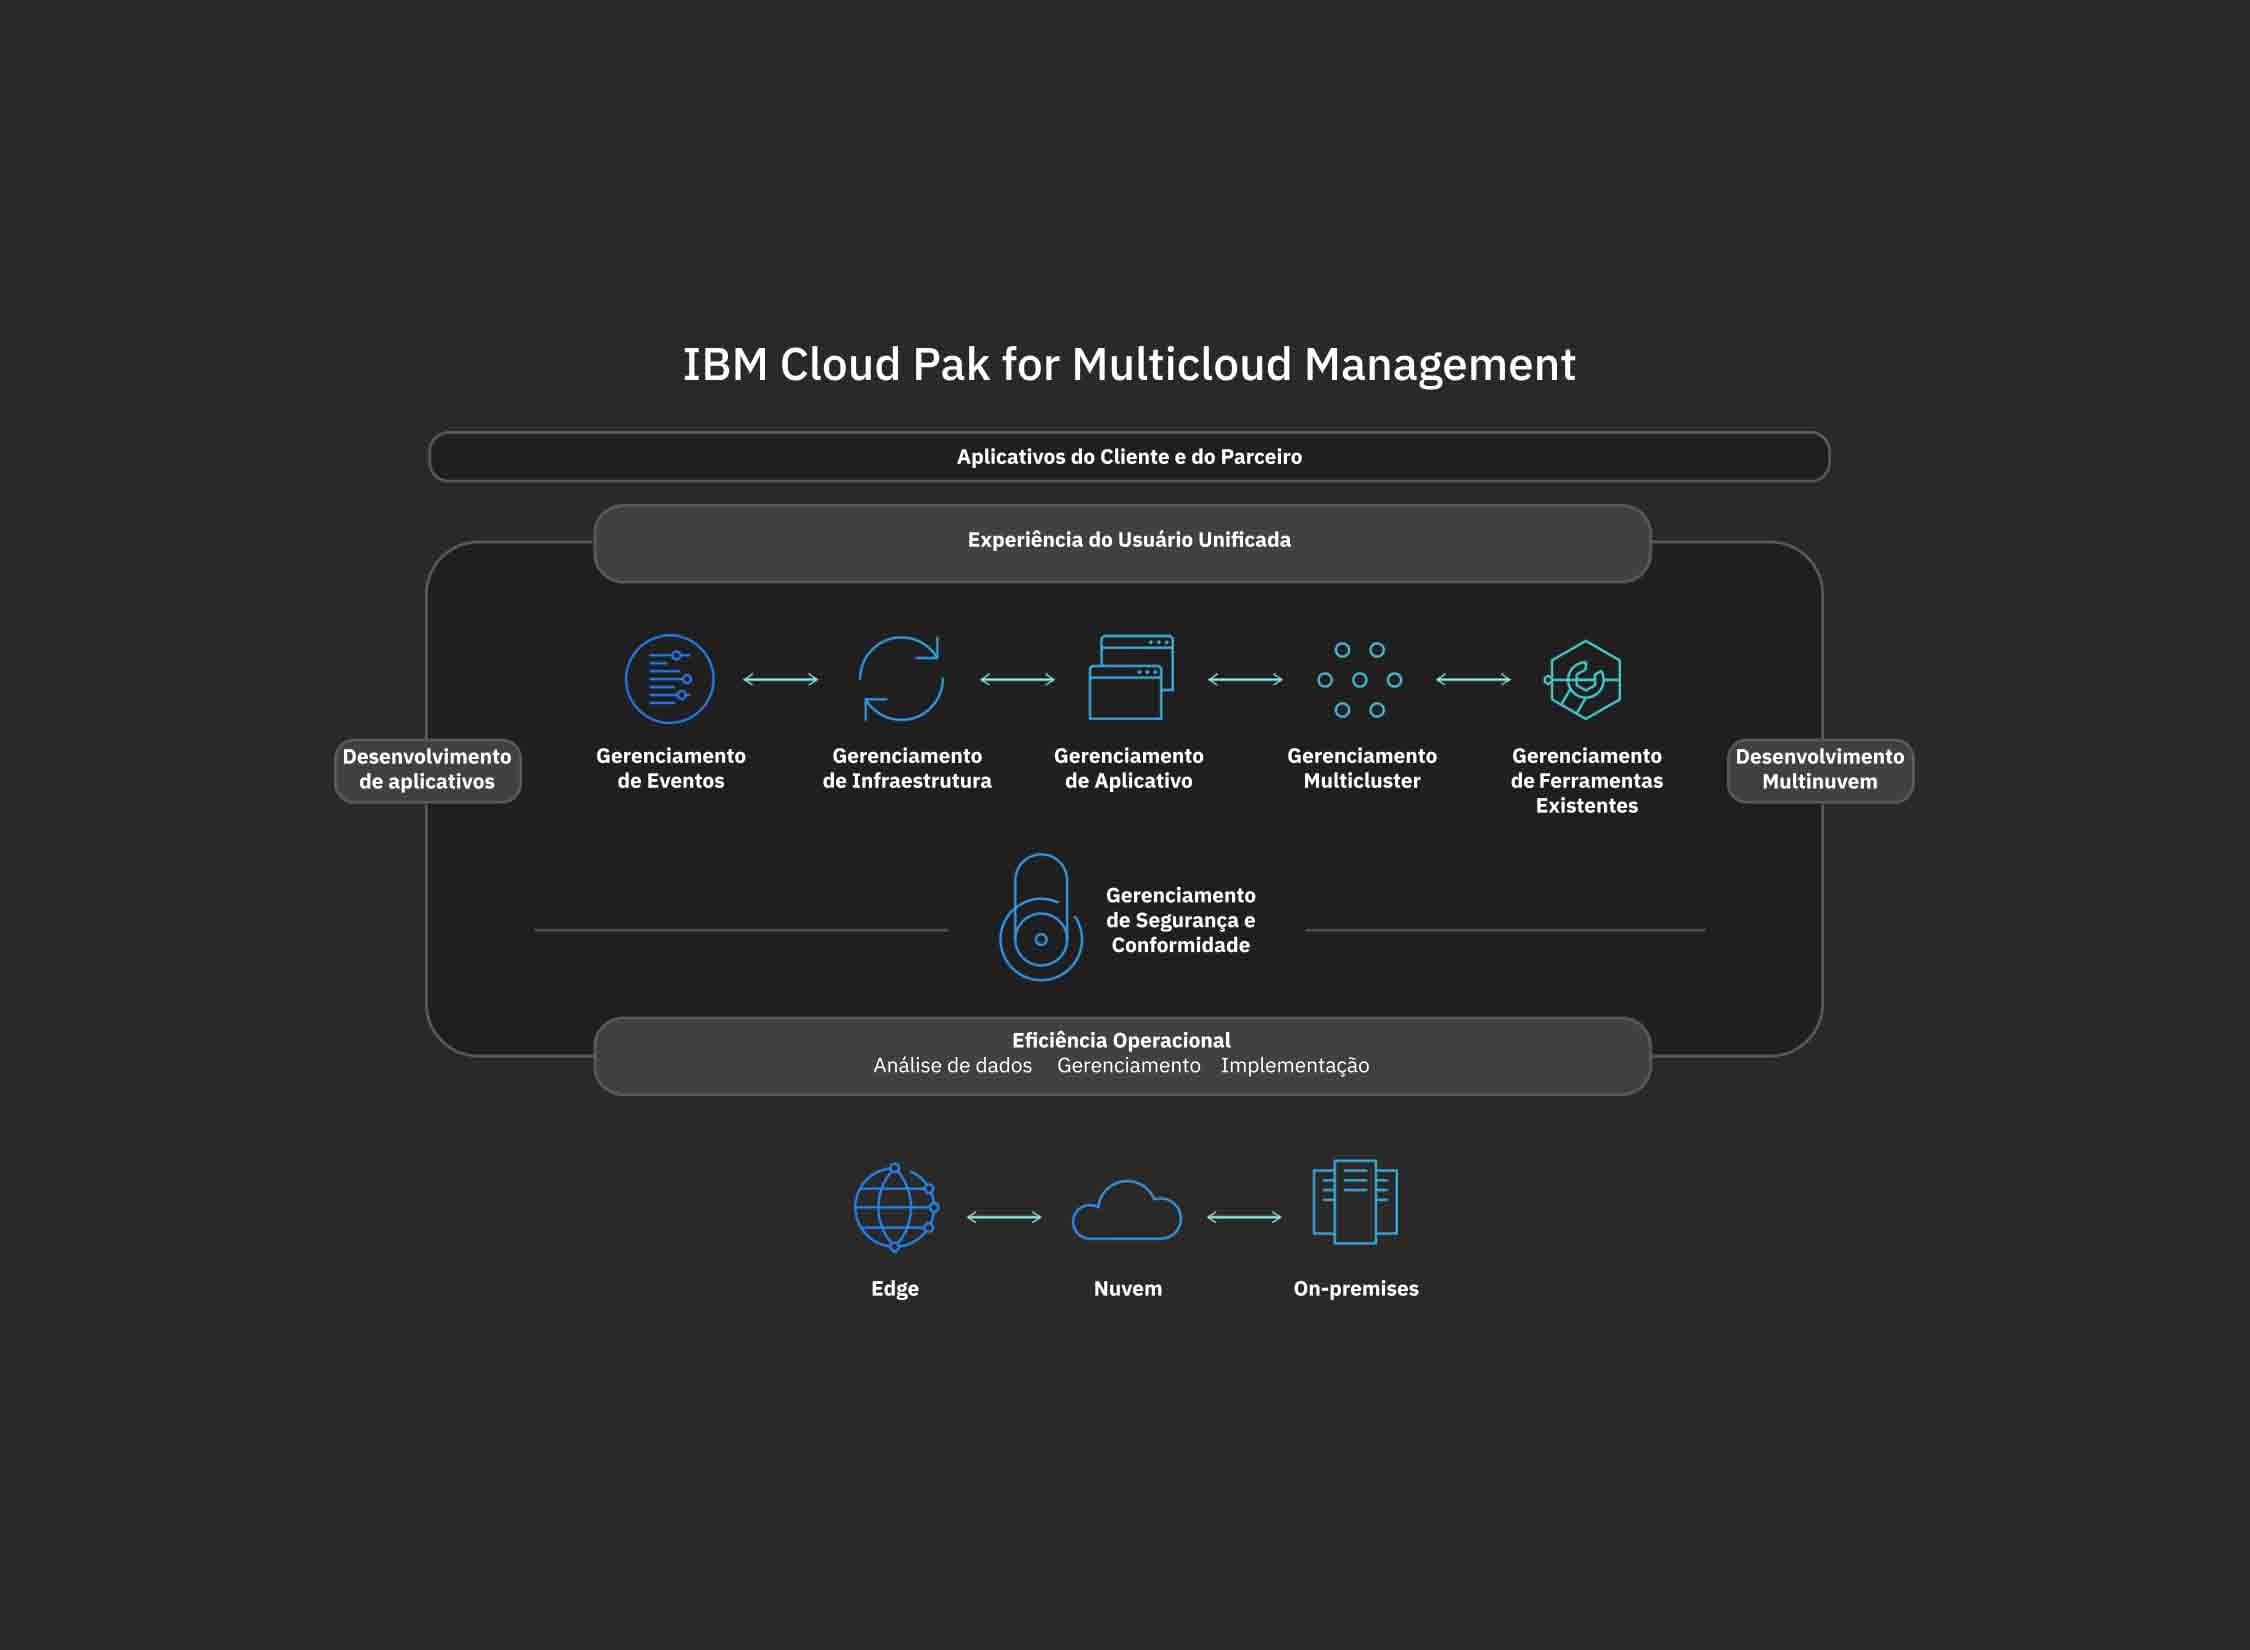 Fluxograma das operações do IBM Cloud Pak for Management